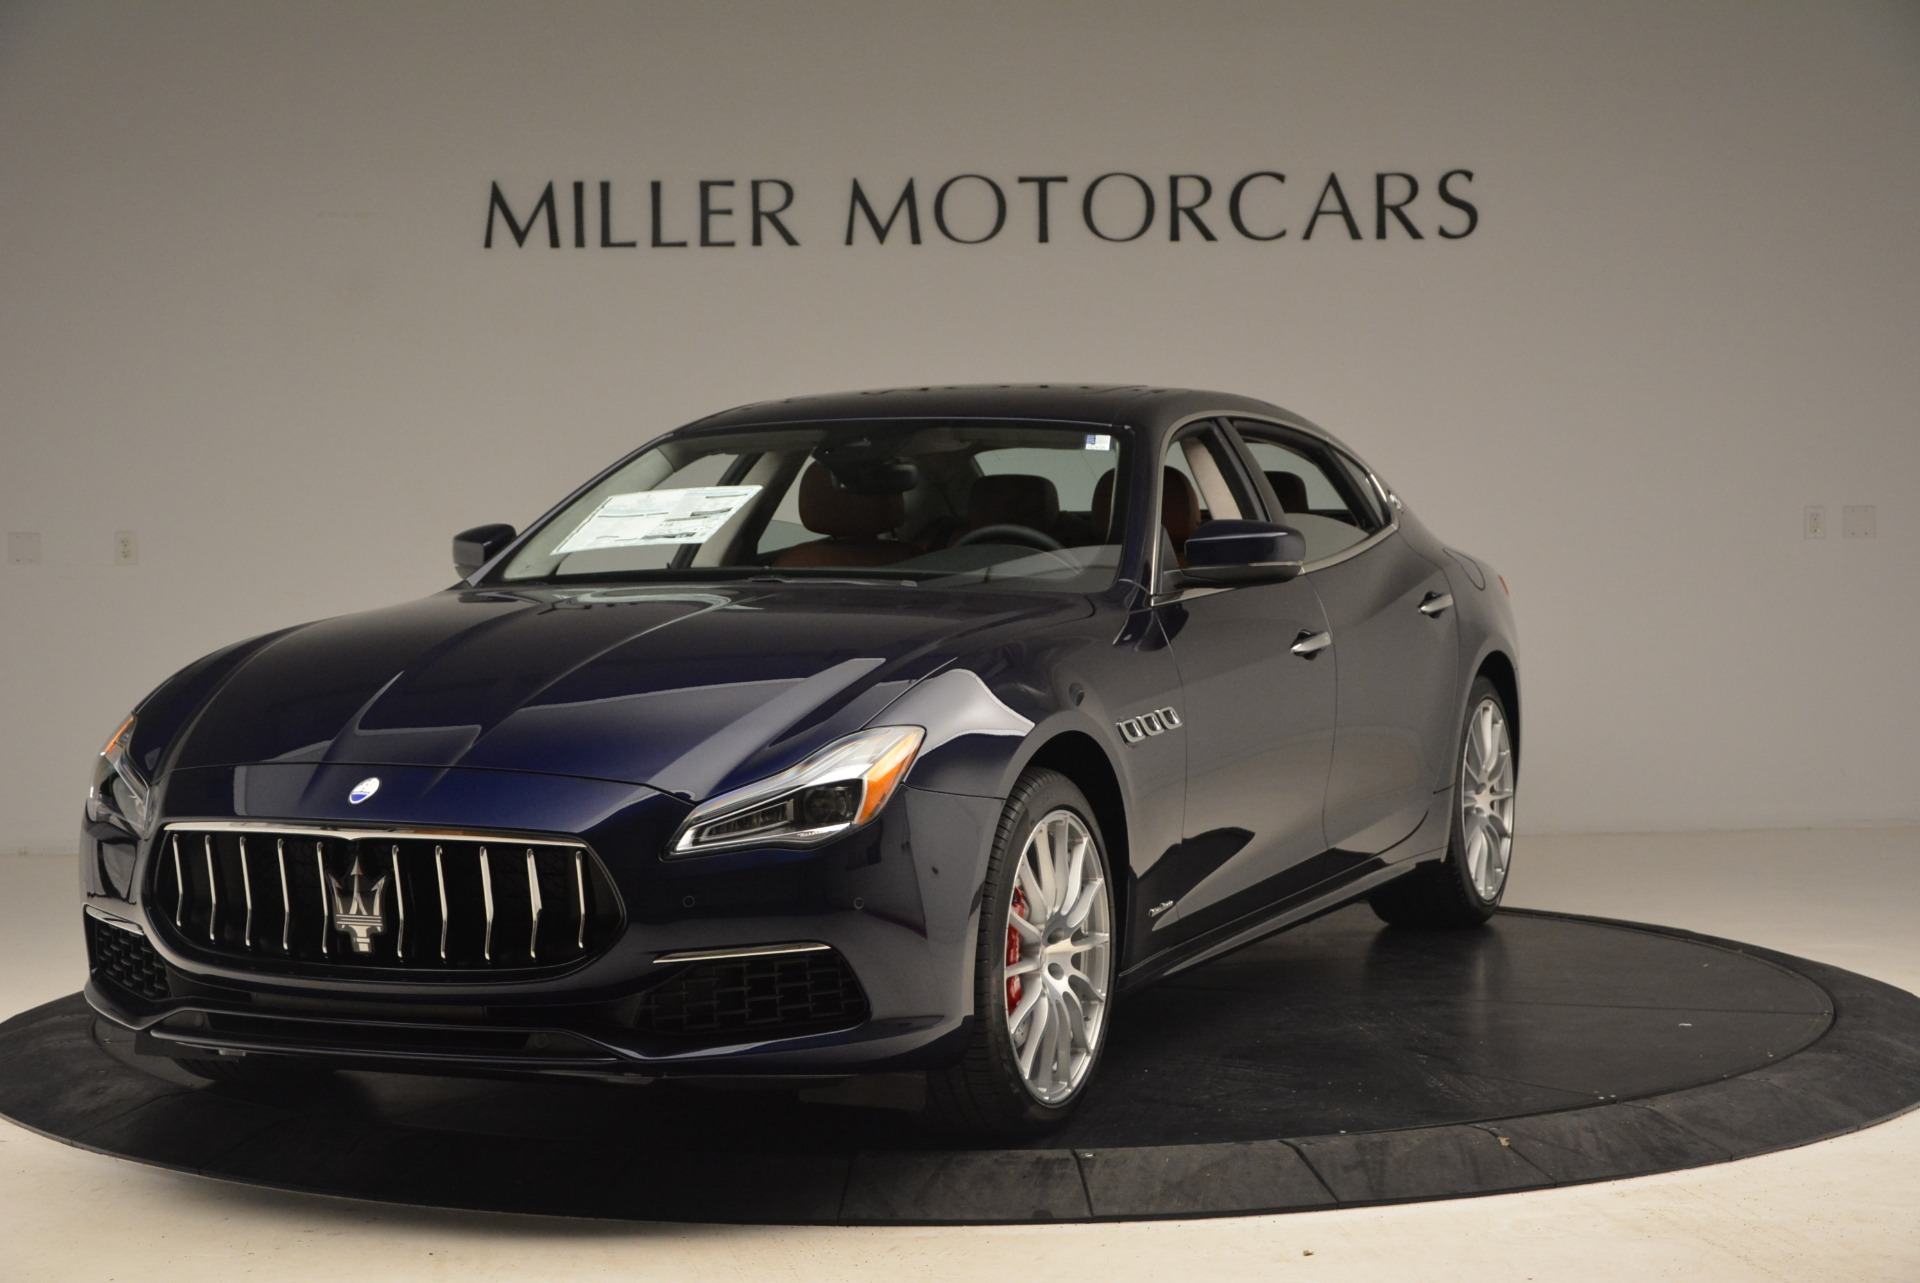 New 2019 Maserati Quattroporte S Q4 GranSport for sale $125,765 at Maserati of Greenwich in Greenwich CT 06830 1